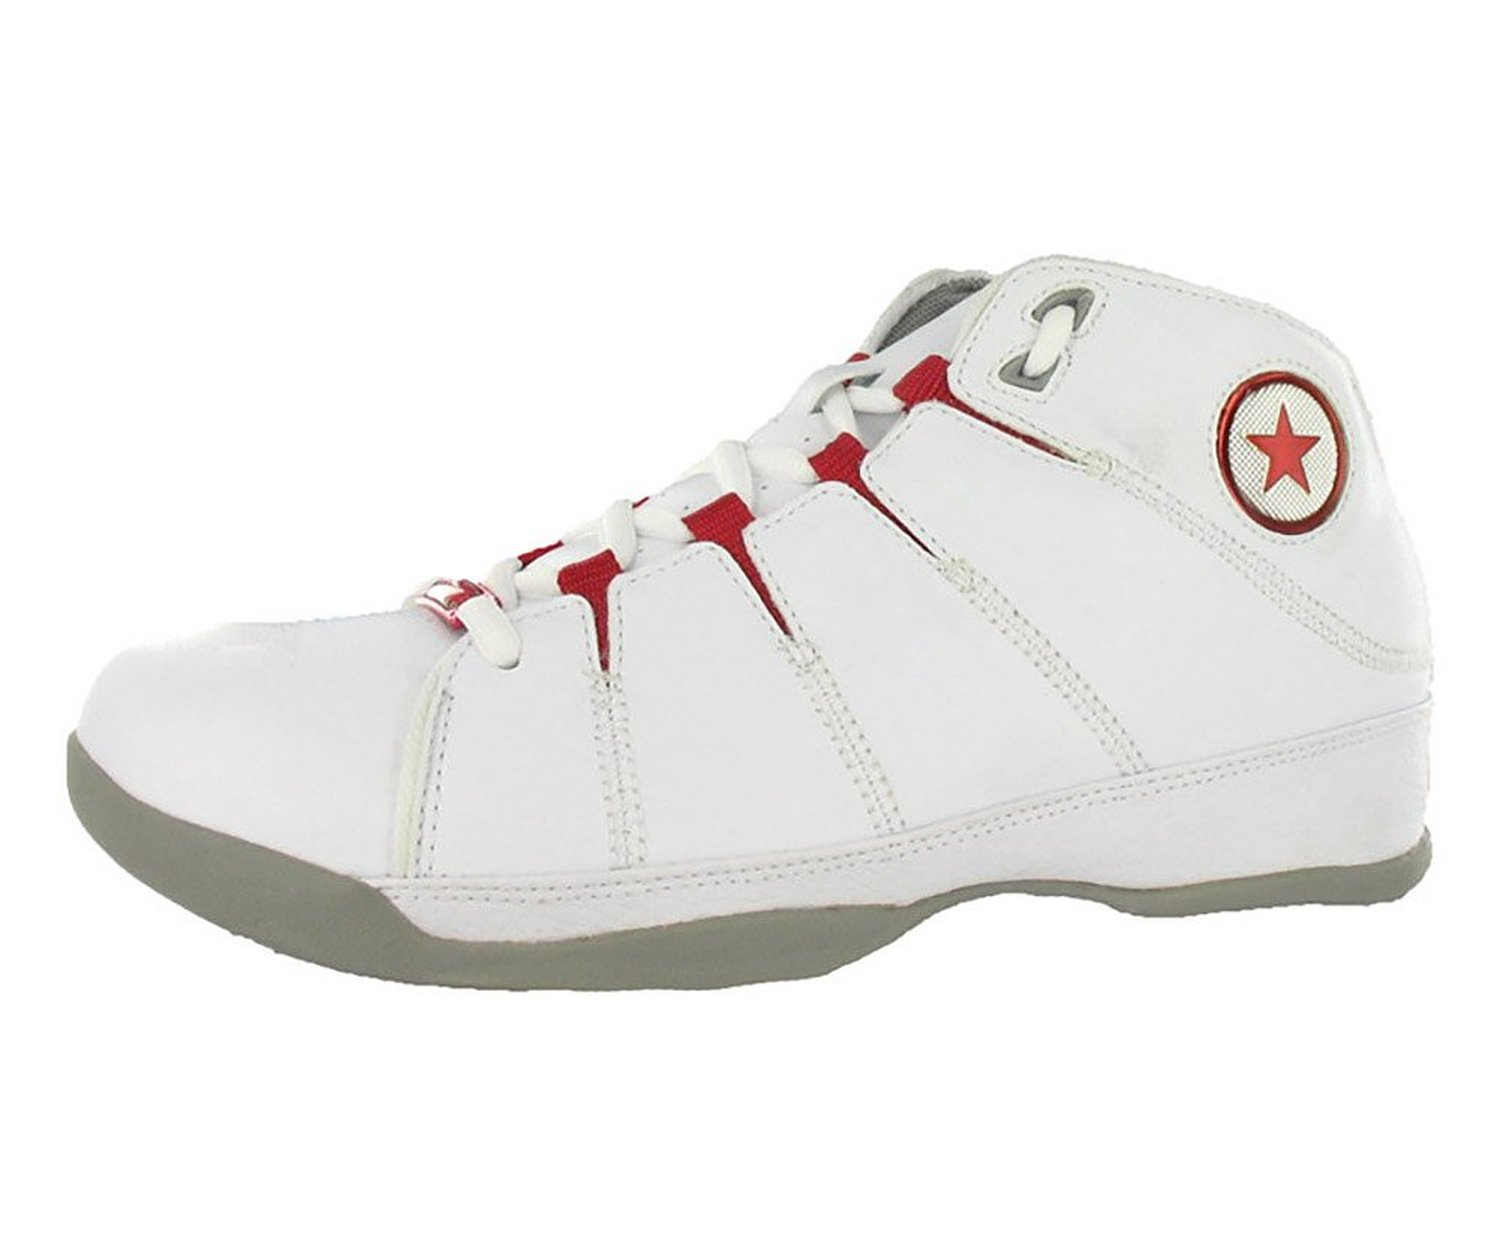 1ca6419b8 Get Quotations · Converse For Three Mid Mens Basketball Shoe